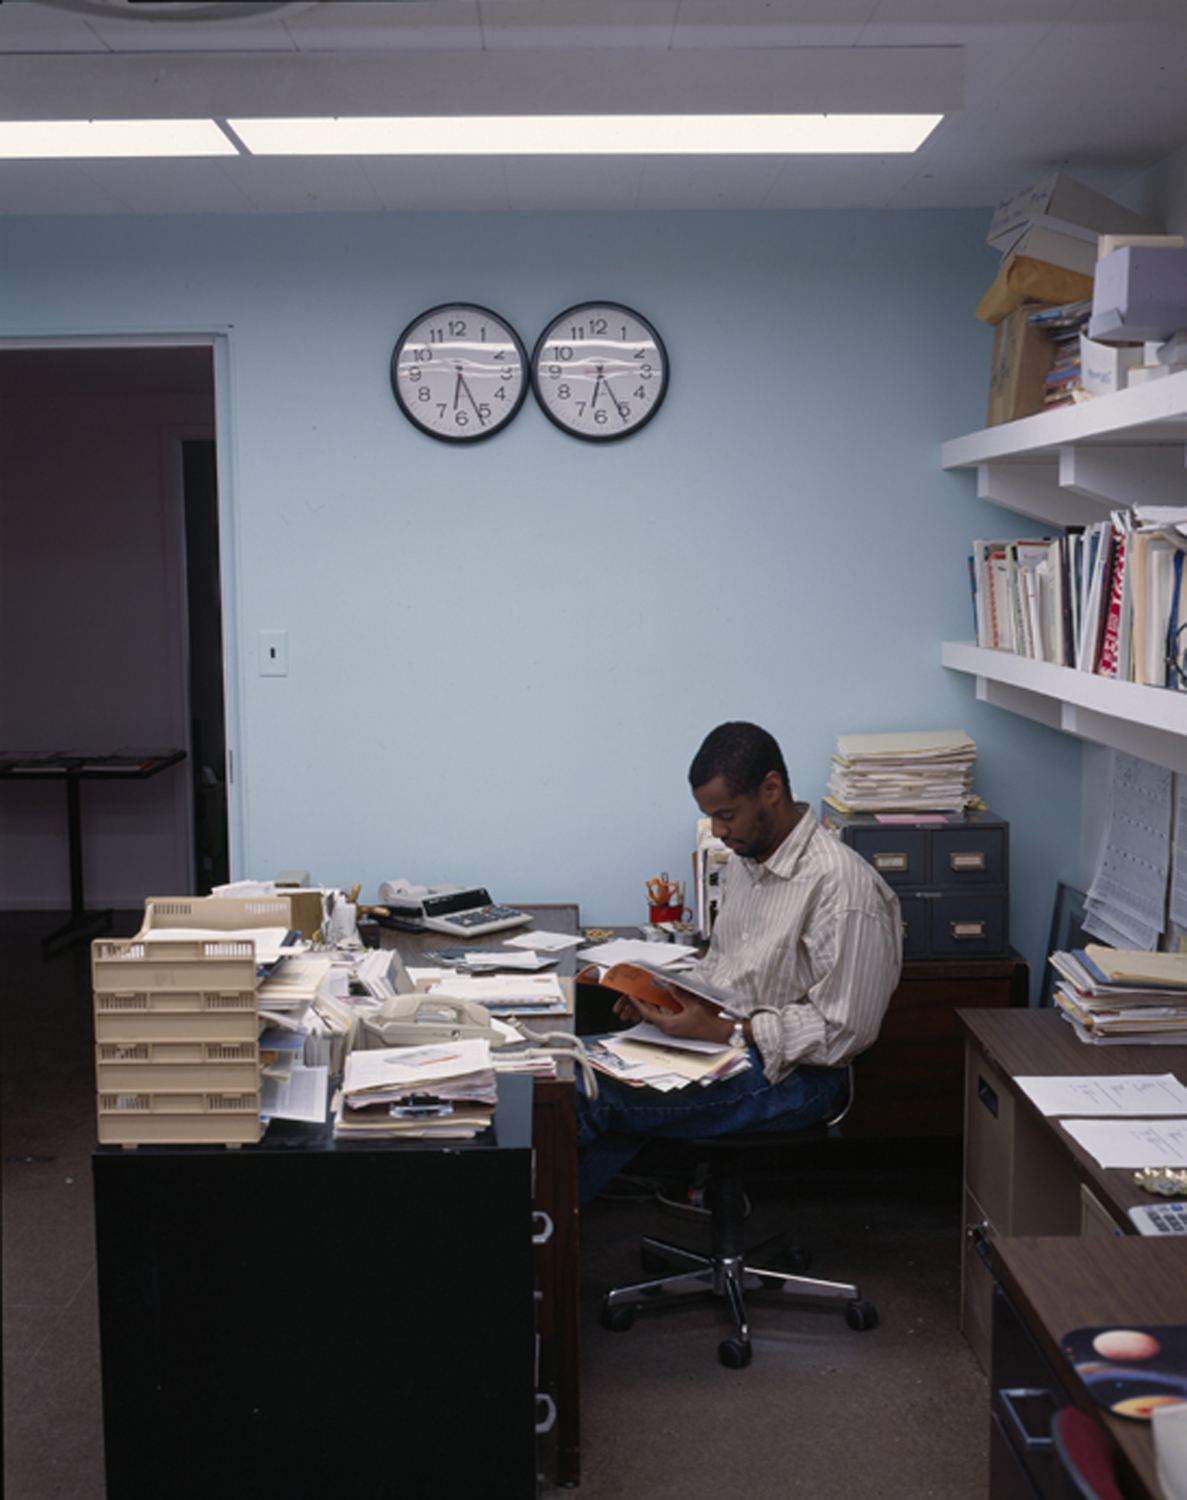 Hamza Walker works at a desk covered in papers.